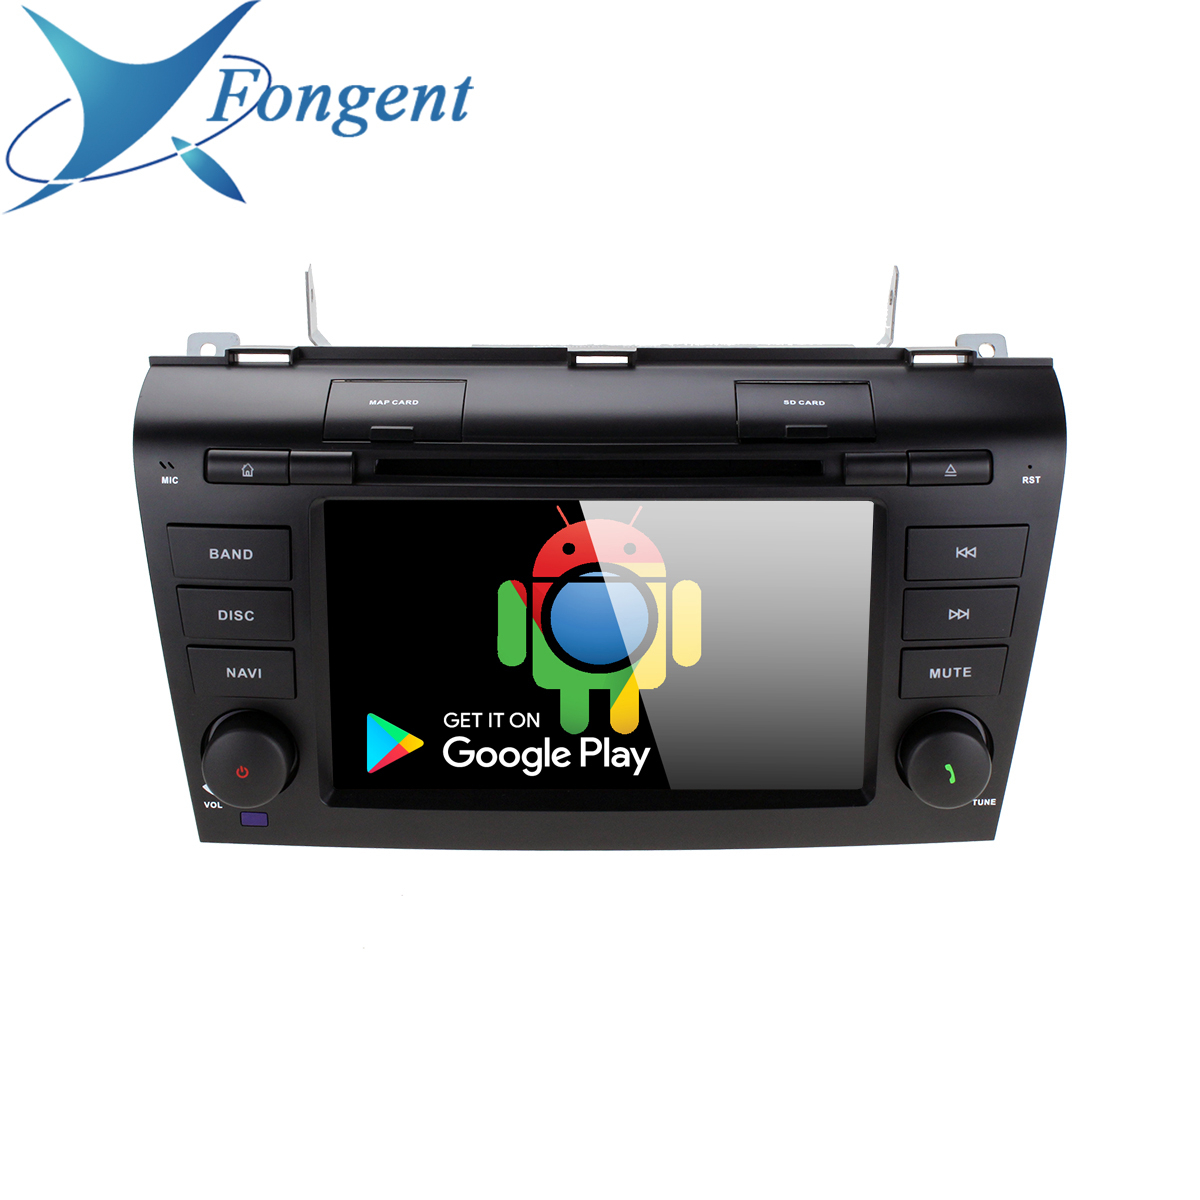 for MAZDA3 <font><b>MAZDA</b></font> <font><b>3</b></font> <font><b>2004</b></font> 2005 2006 2007 2008 2009 Multimedia Android DSP Unit DVD Player GPS Navi Stereo 2 din Radio carplay PX6 image